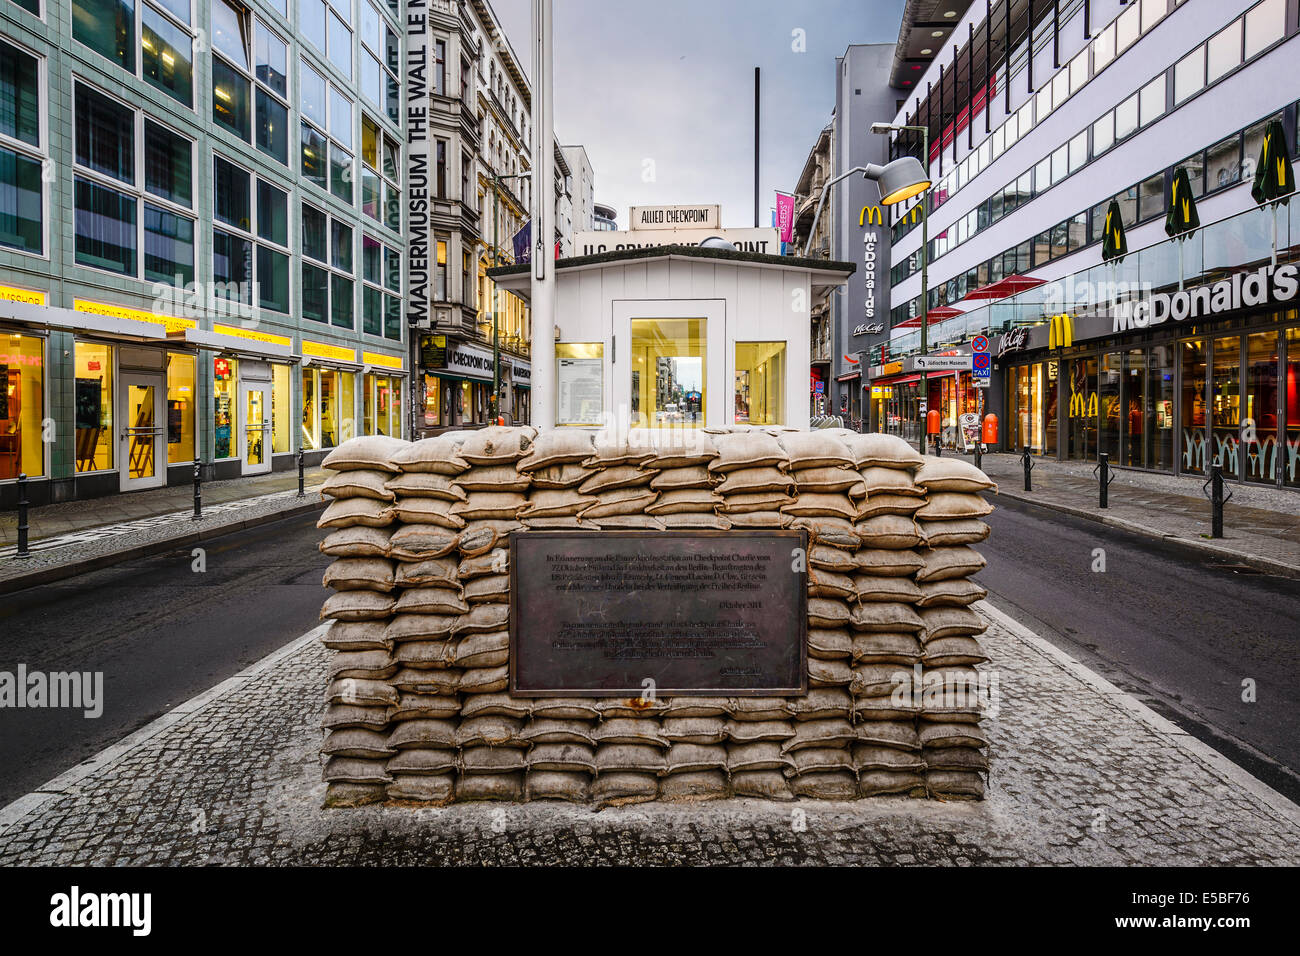 Checkpoint Charlie in Berlin, Deutschland. Stockfoto